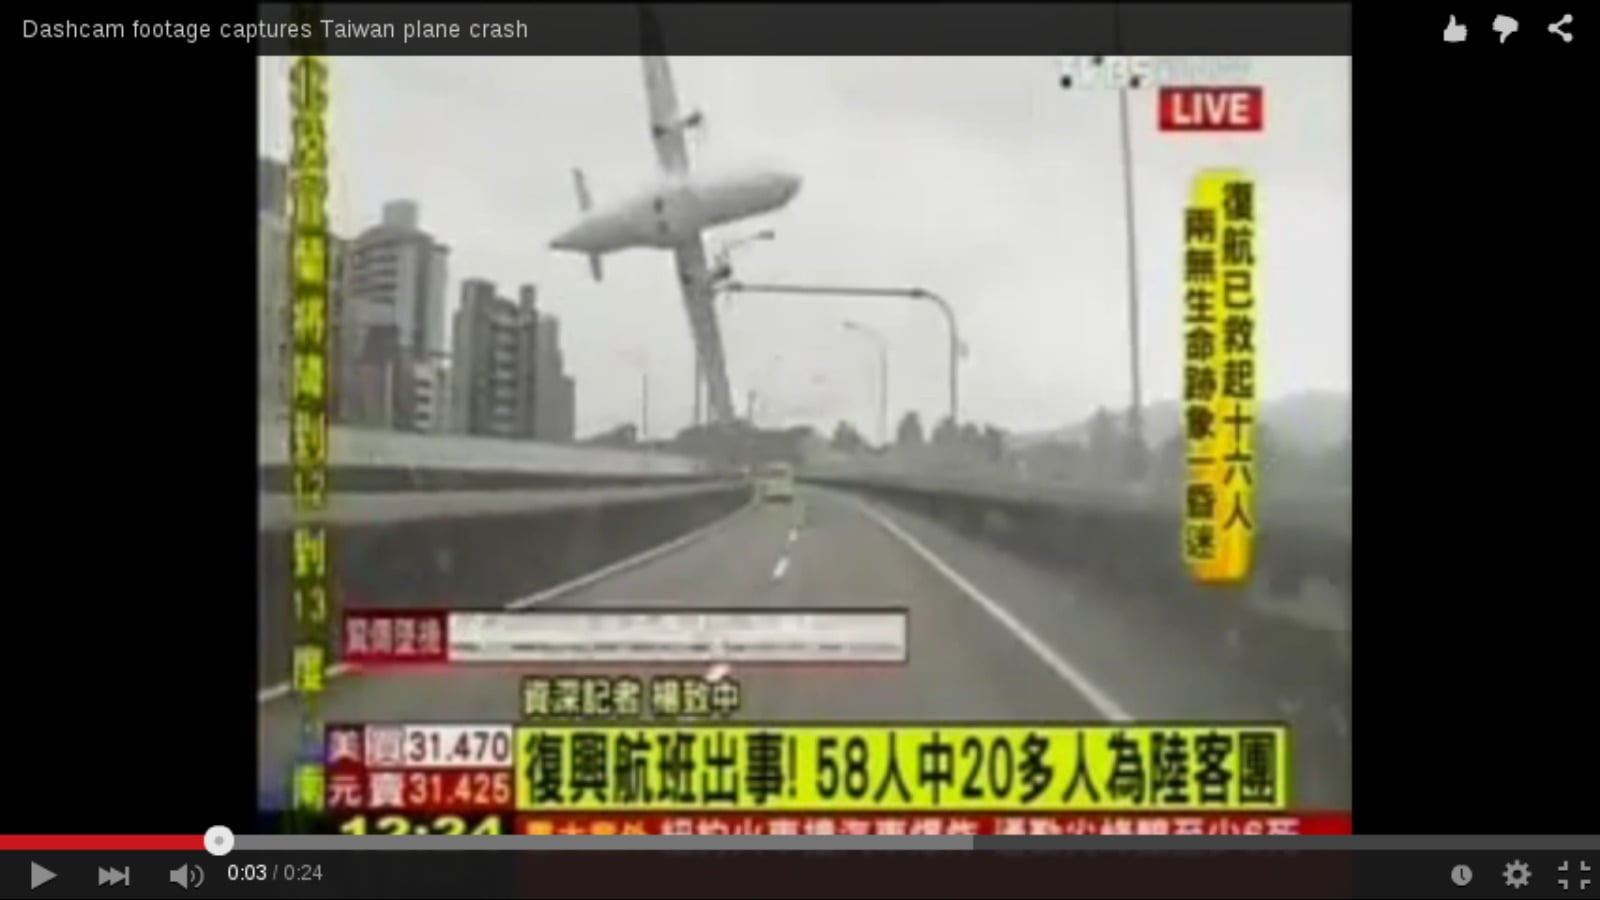 TransAsia-Crash 2